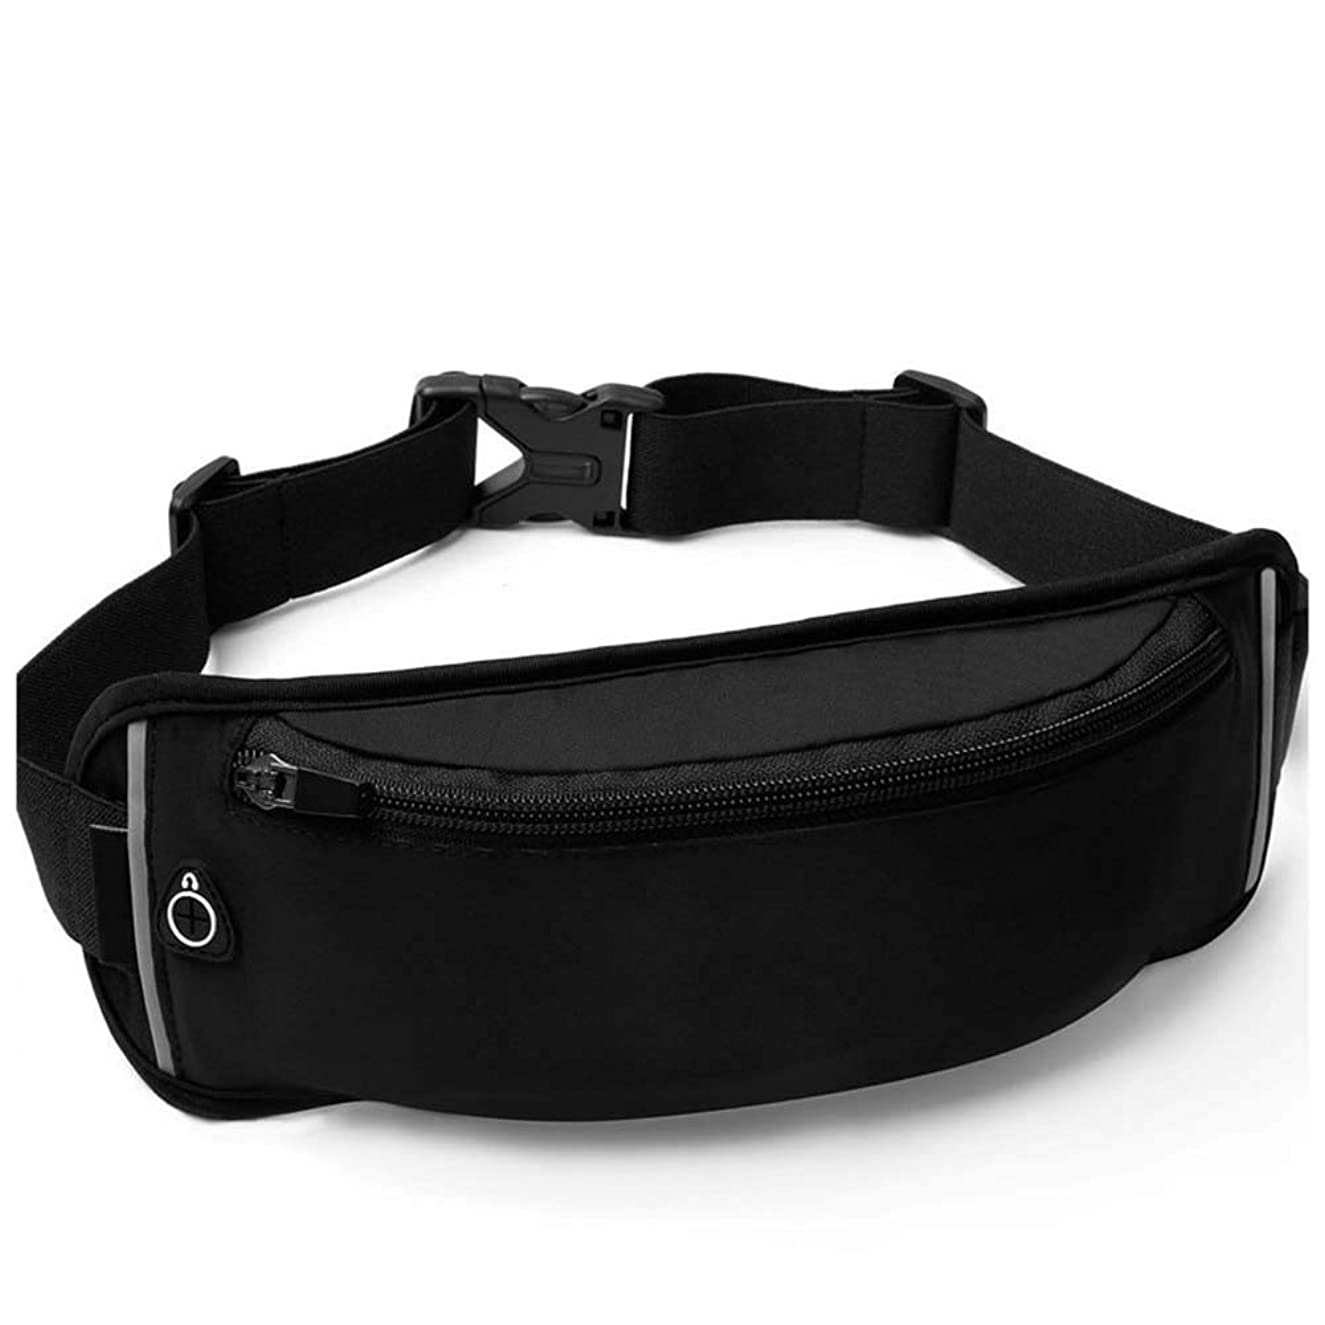 Bum Bag Running Belt Elastic Waist Packs Breathable Cycling Bum Bag with Headphone Hole Walking Great for Carrying Keys Cards Phonebelow 6 Inch